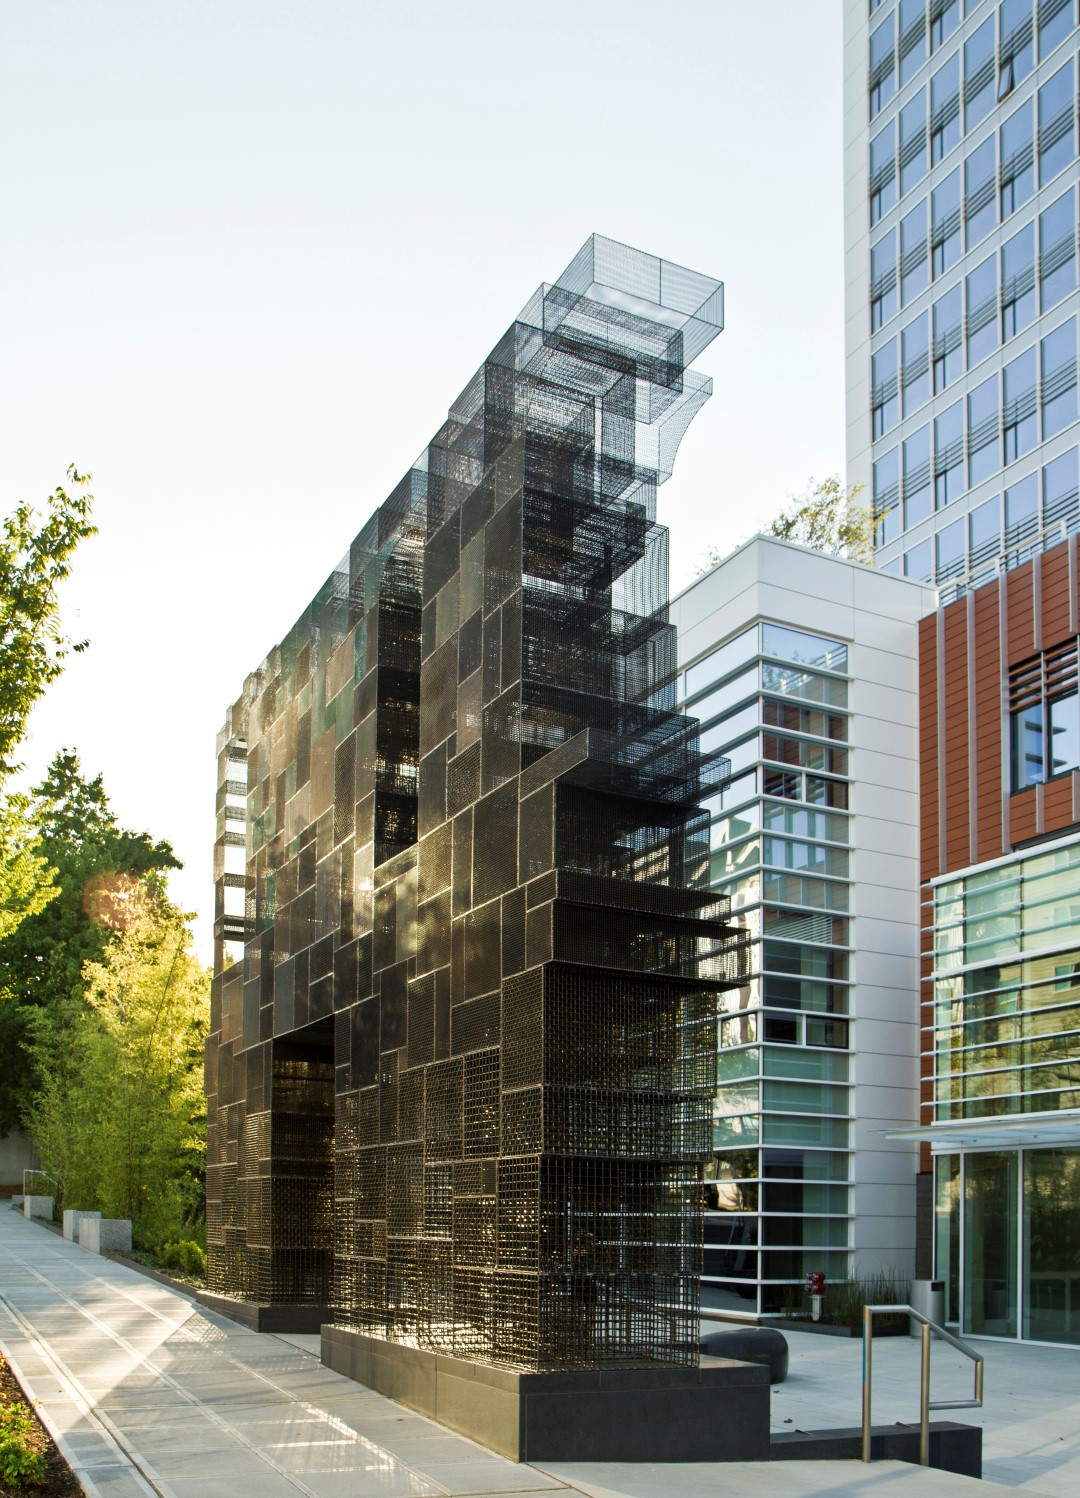 Banker Wire mesh provides the strength and durability required by this ambitious outdoor installation and the vast array of aesthetic options needed to realize the designer's creative approach.